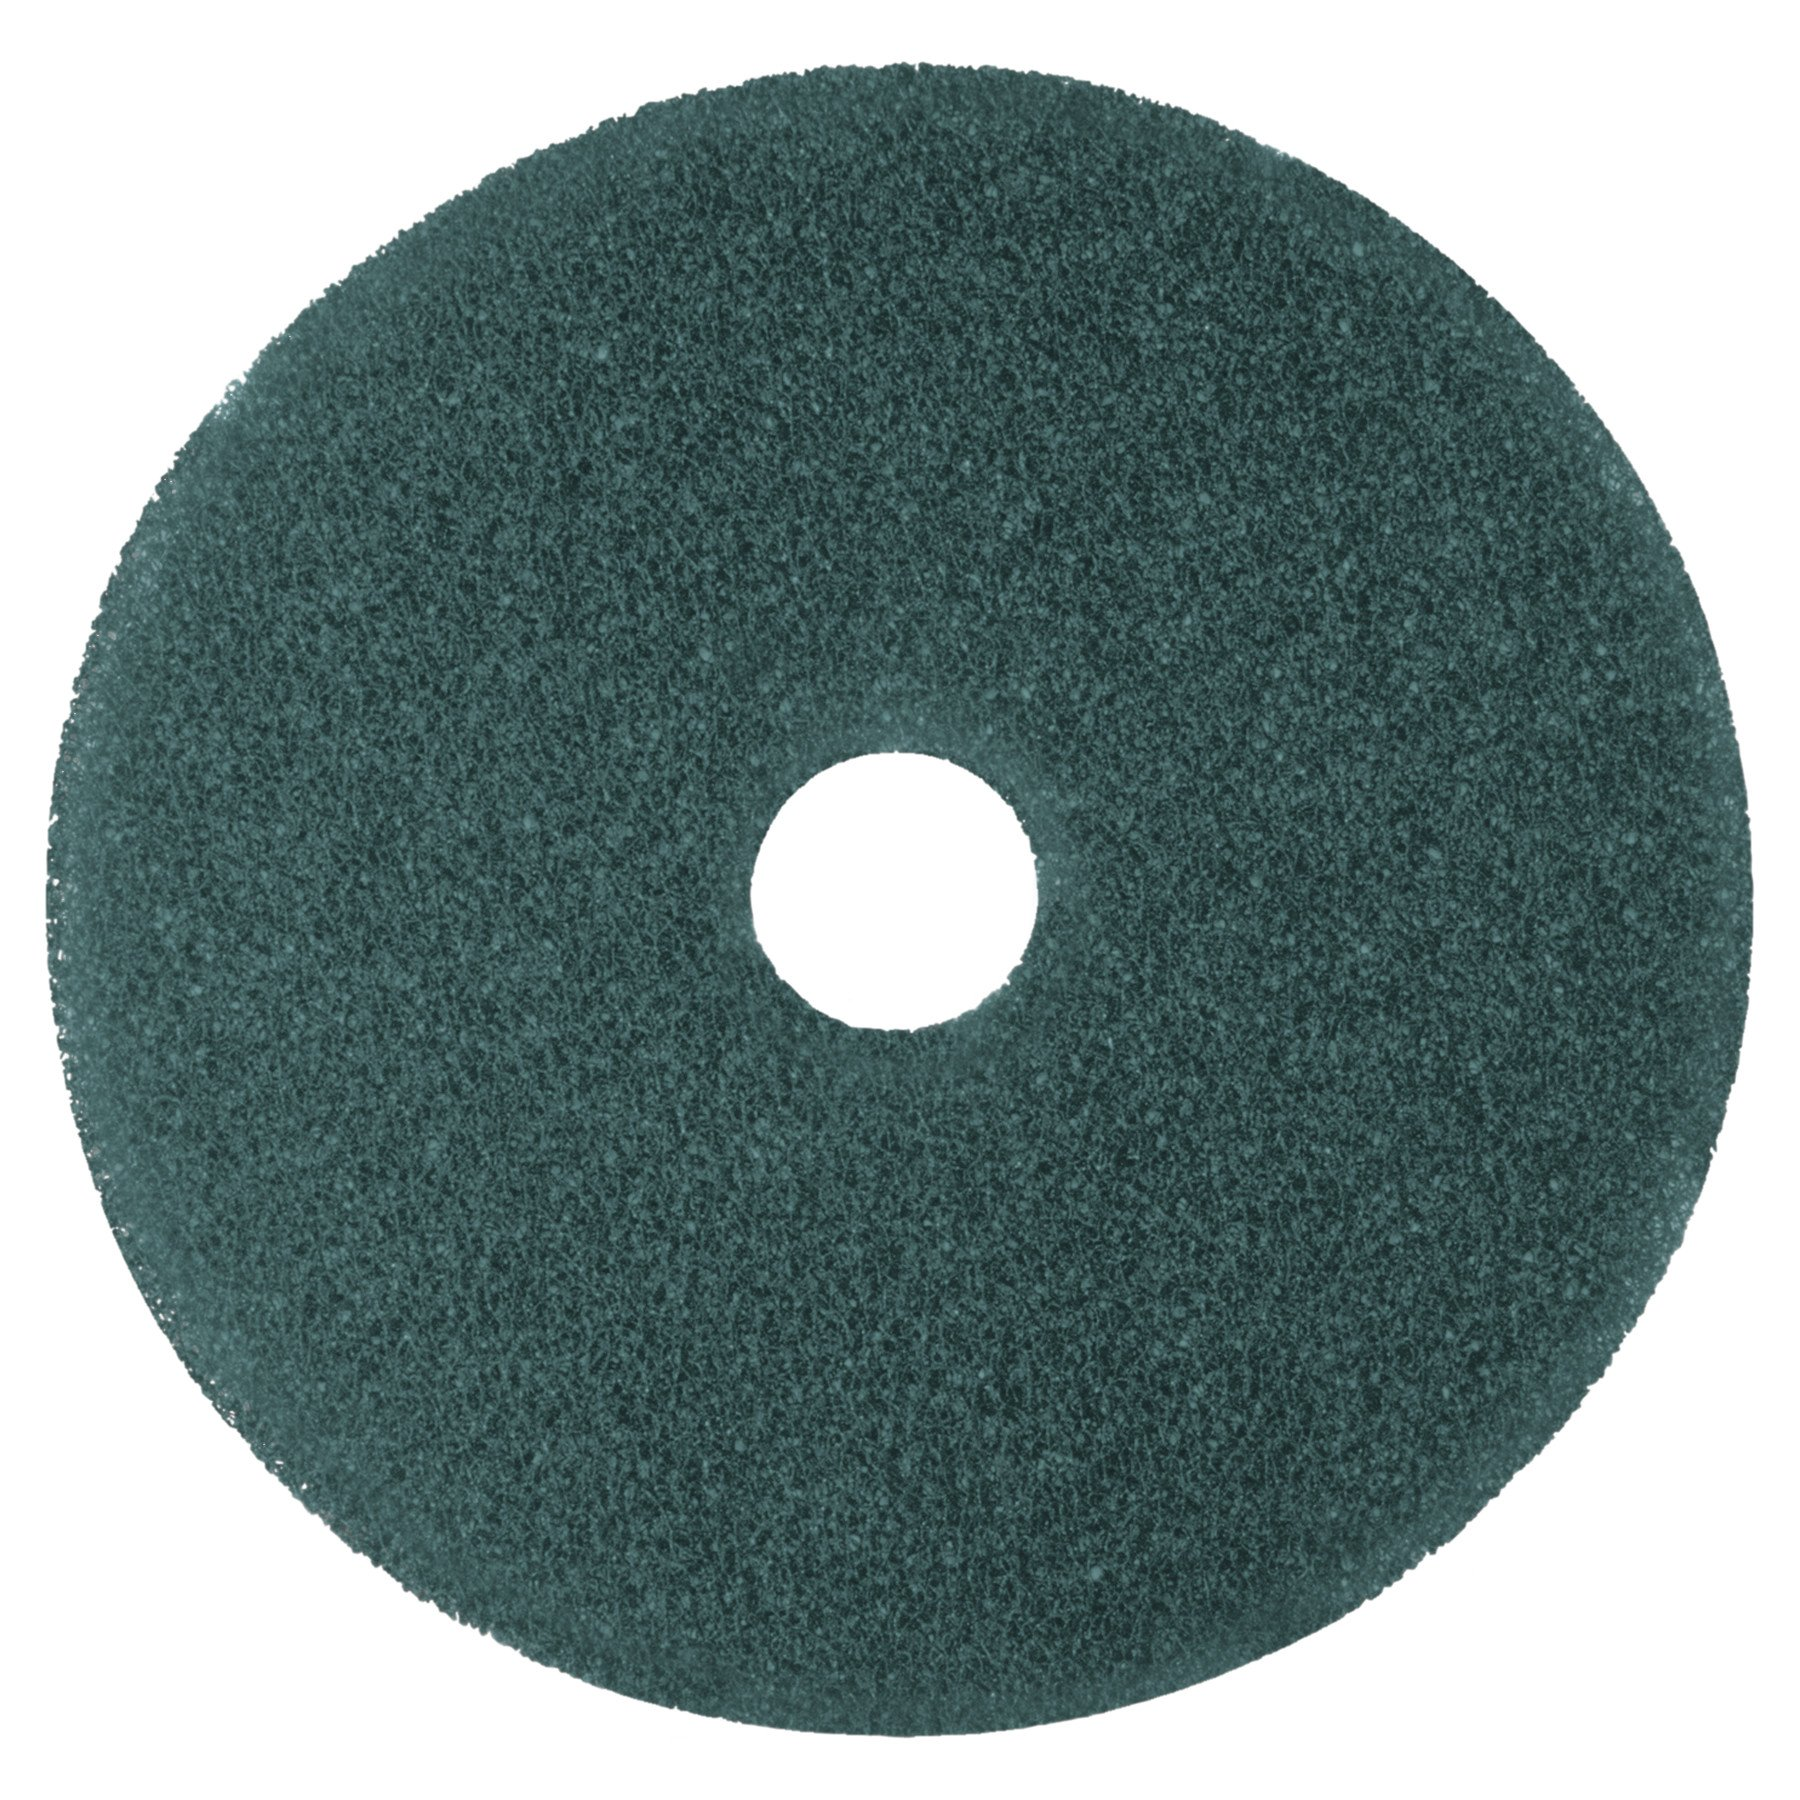 3M Blue Cleaner Pad 5300, 17'' Floor Care Pad (Case of 5) by 3M